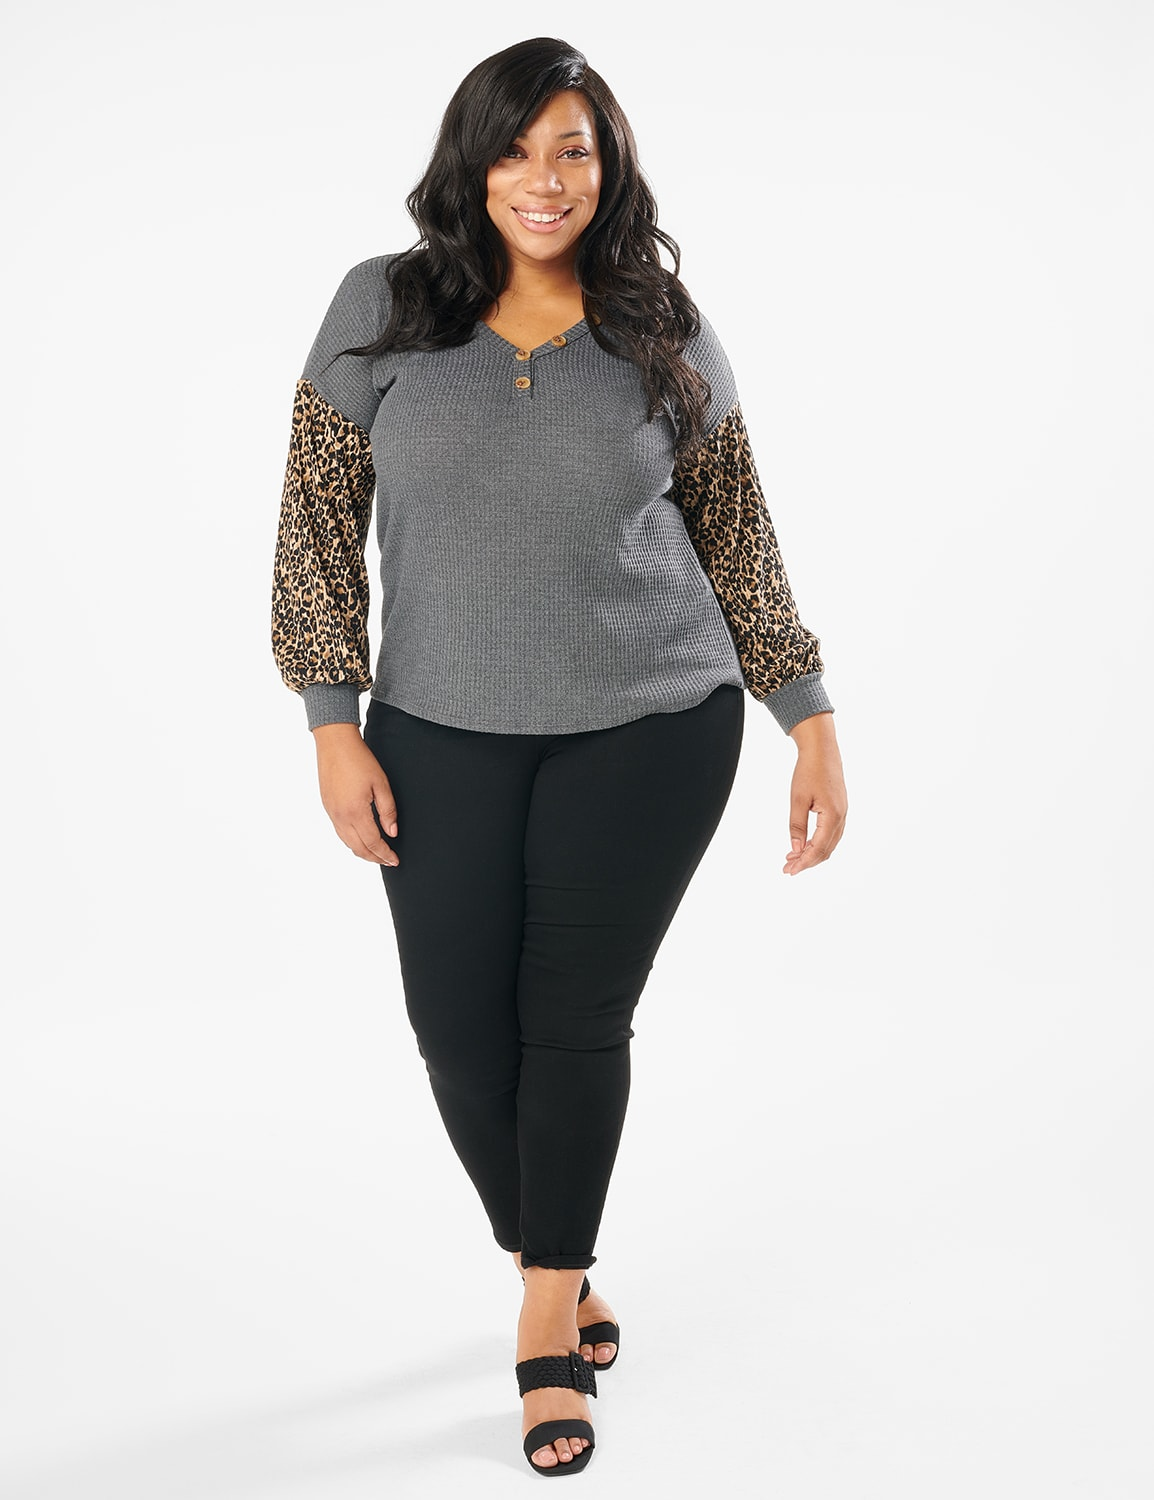 Y Henley Mixed Animal Thermal Knit Top - Plus - Grey - Front